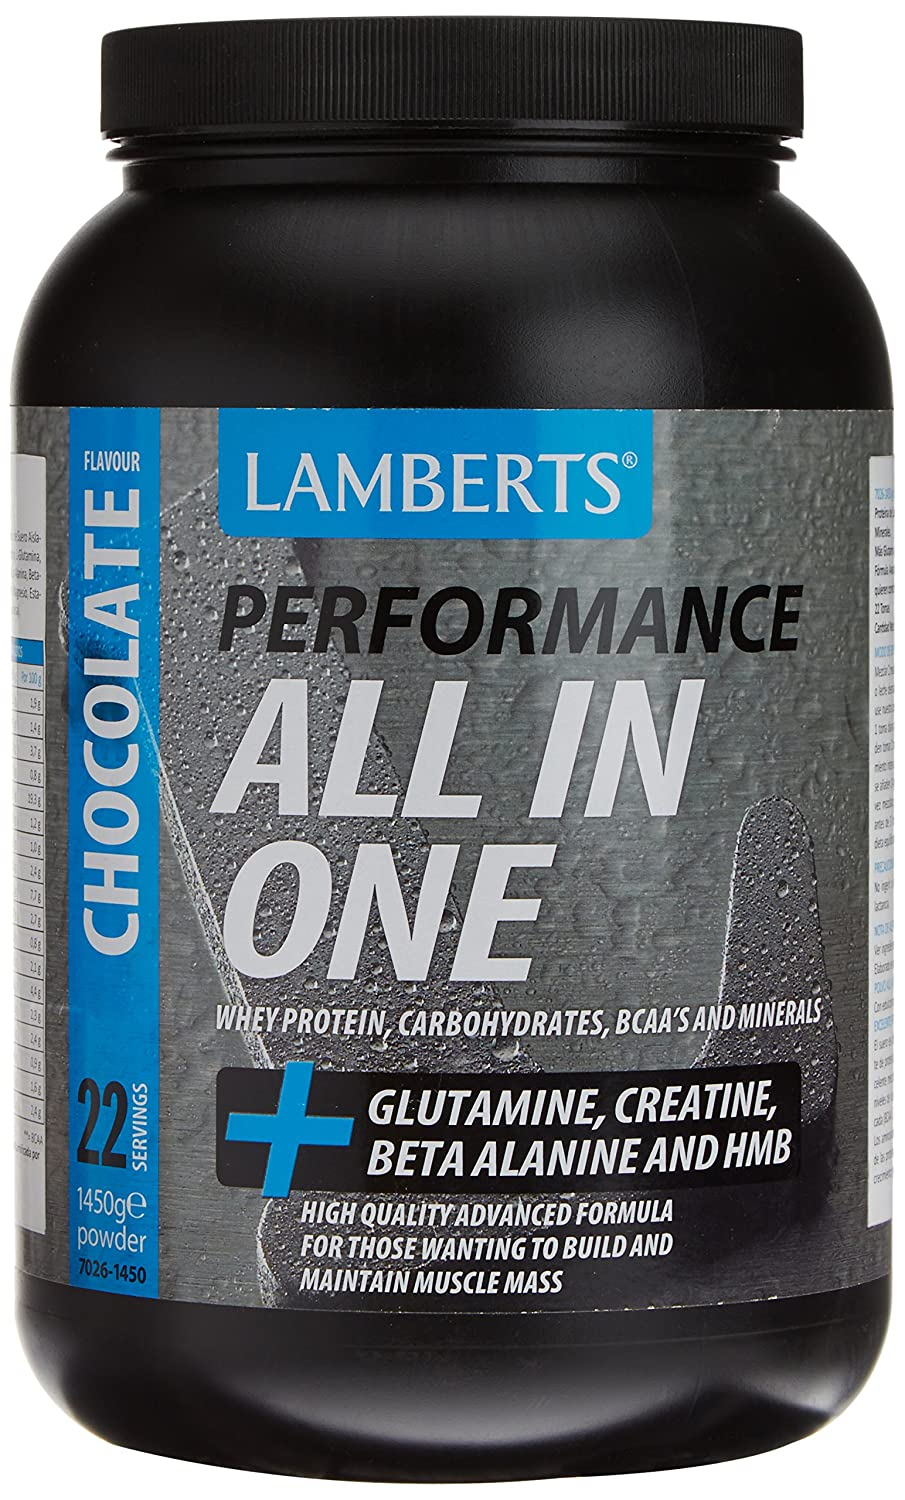 Lamberts All in One Suplemento para Deportistas, Sabor a Chocolate - 1450 gr: Amazon.es: Salud y cuidado personal